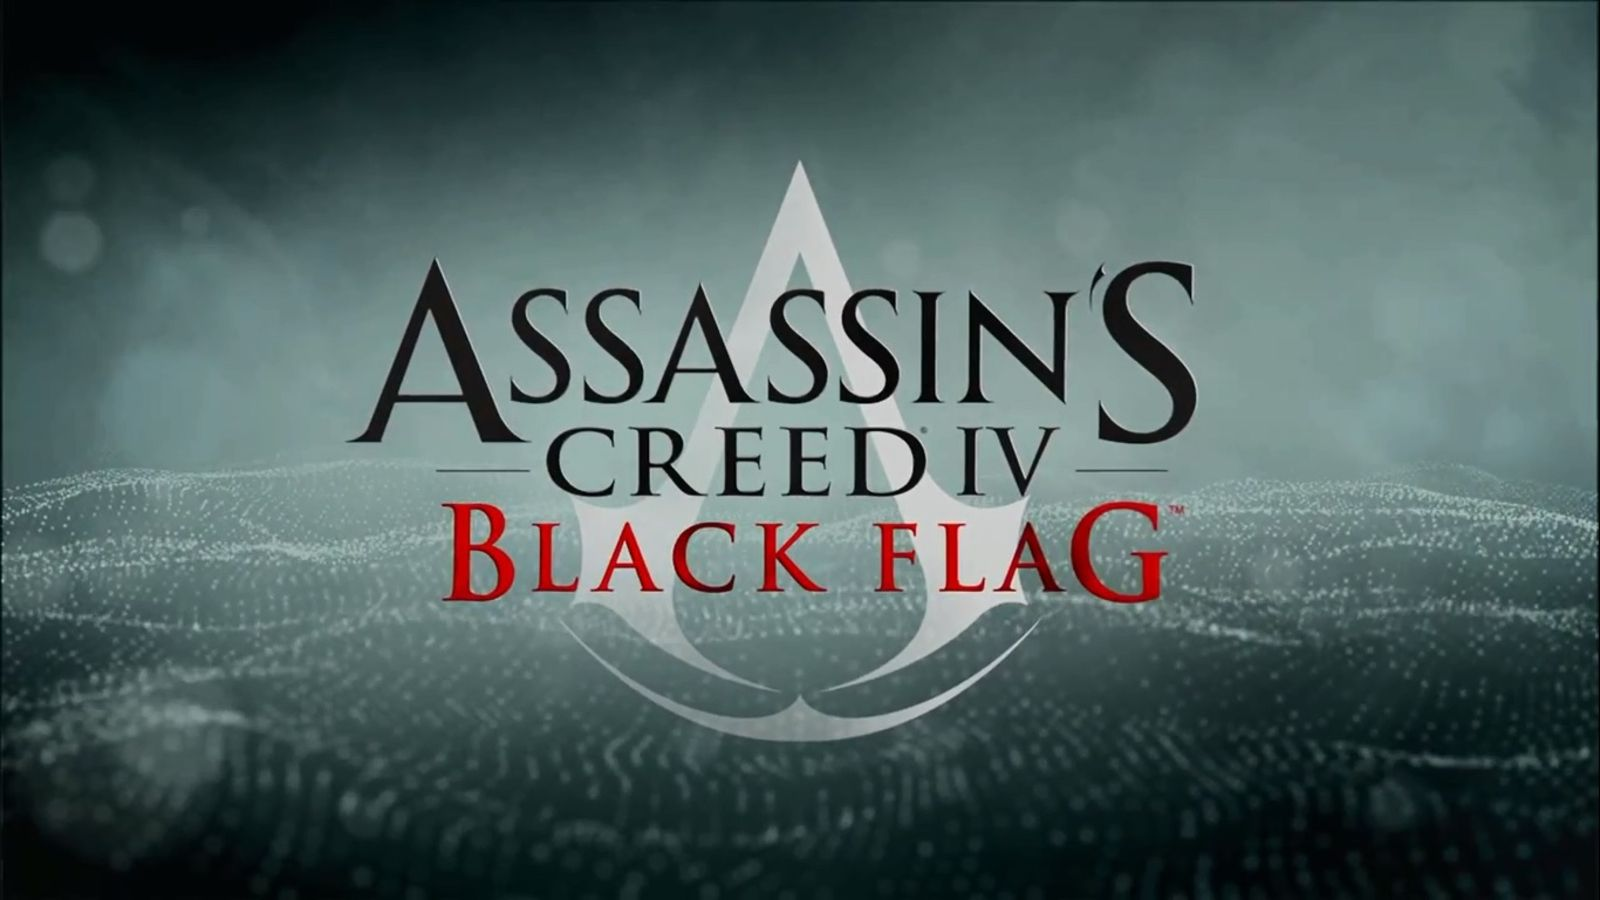 Assassins creed iv black flag logo hd for desktop game hd assassins creed iv black flag logo hd for desktop game hd wallpaper voltagebd Image collections